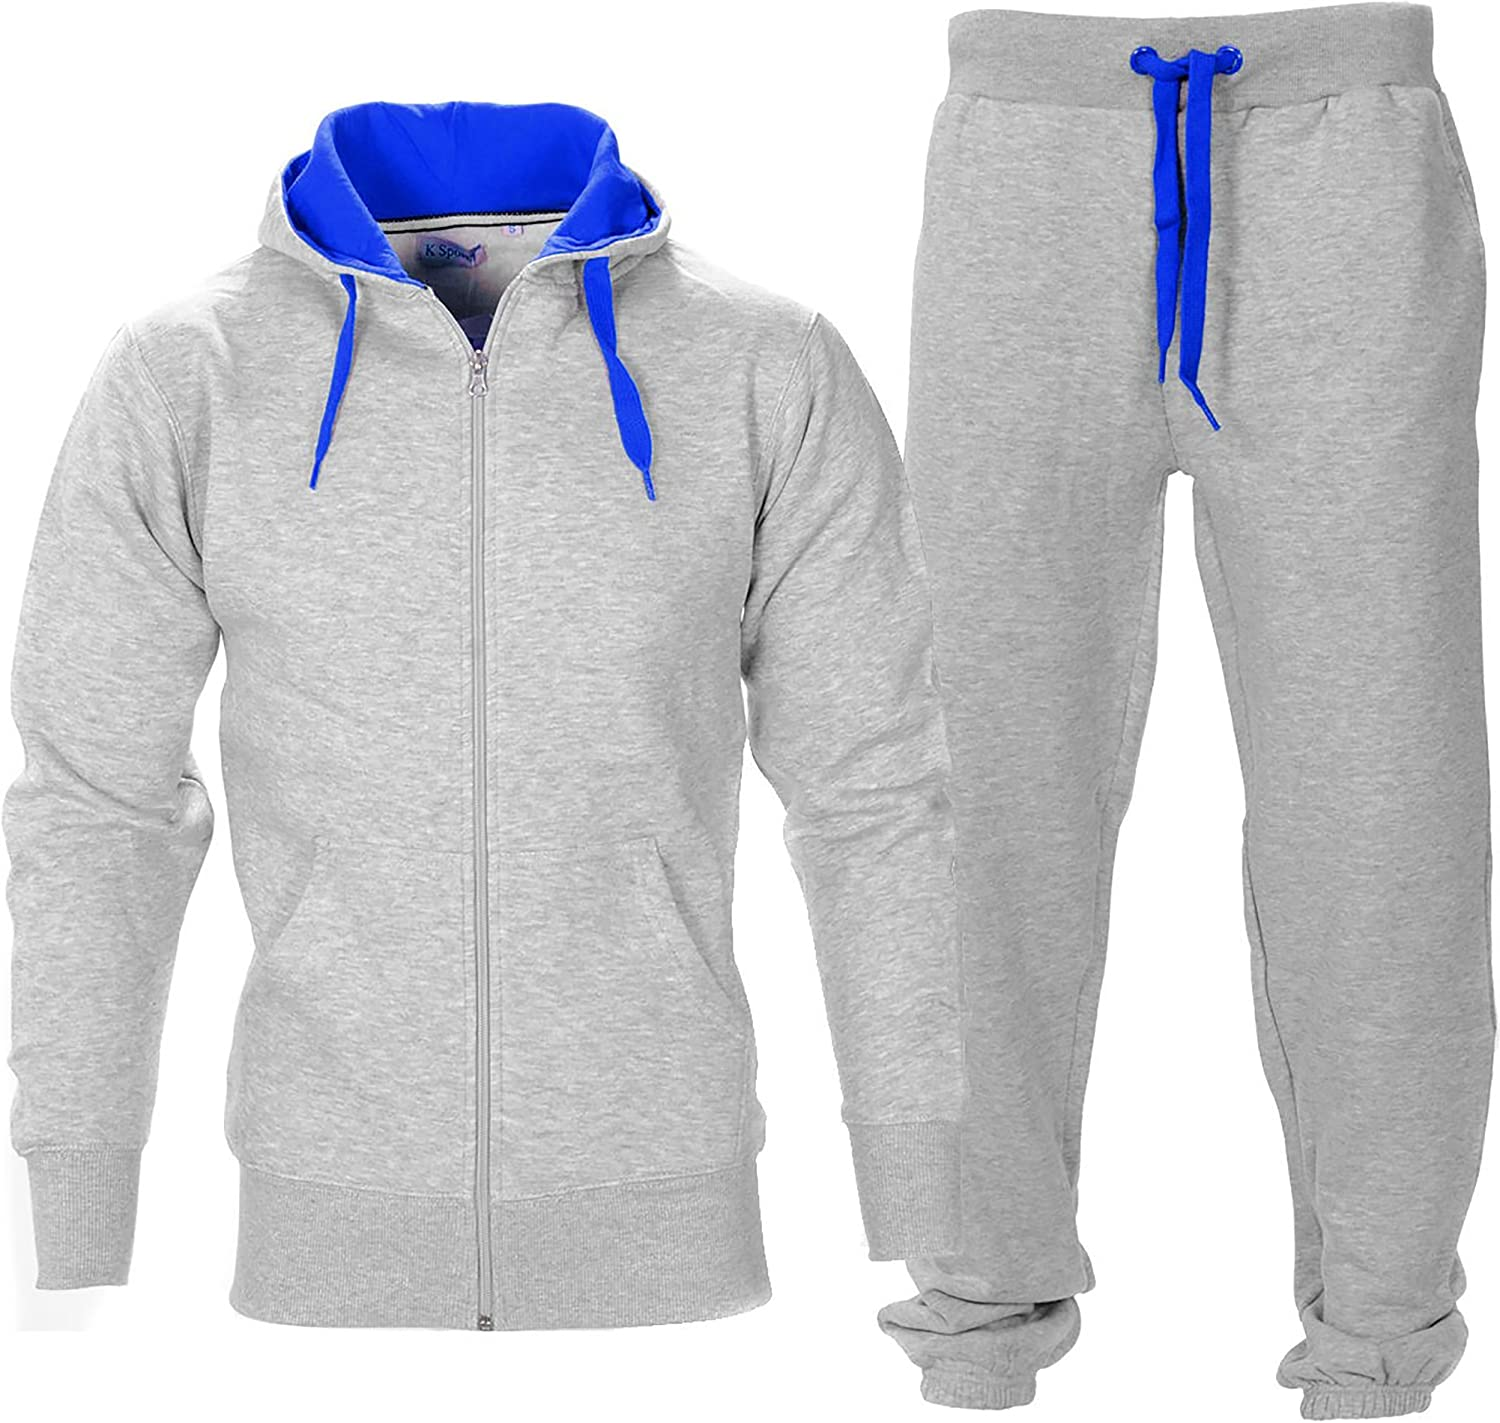 Simply Chic Outlet - Chándal - para Hombre Grigio Argento/BLU M ...